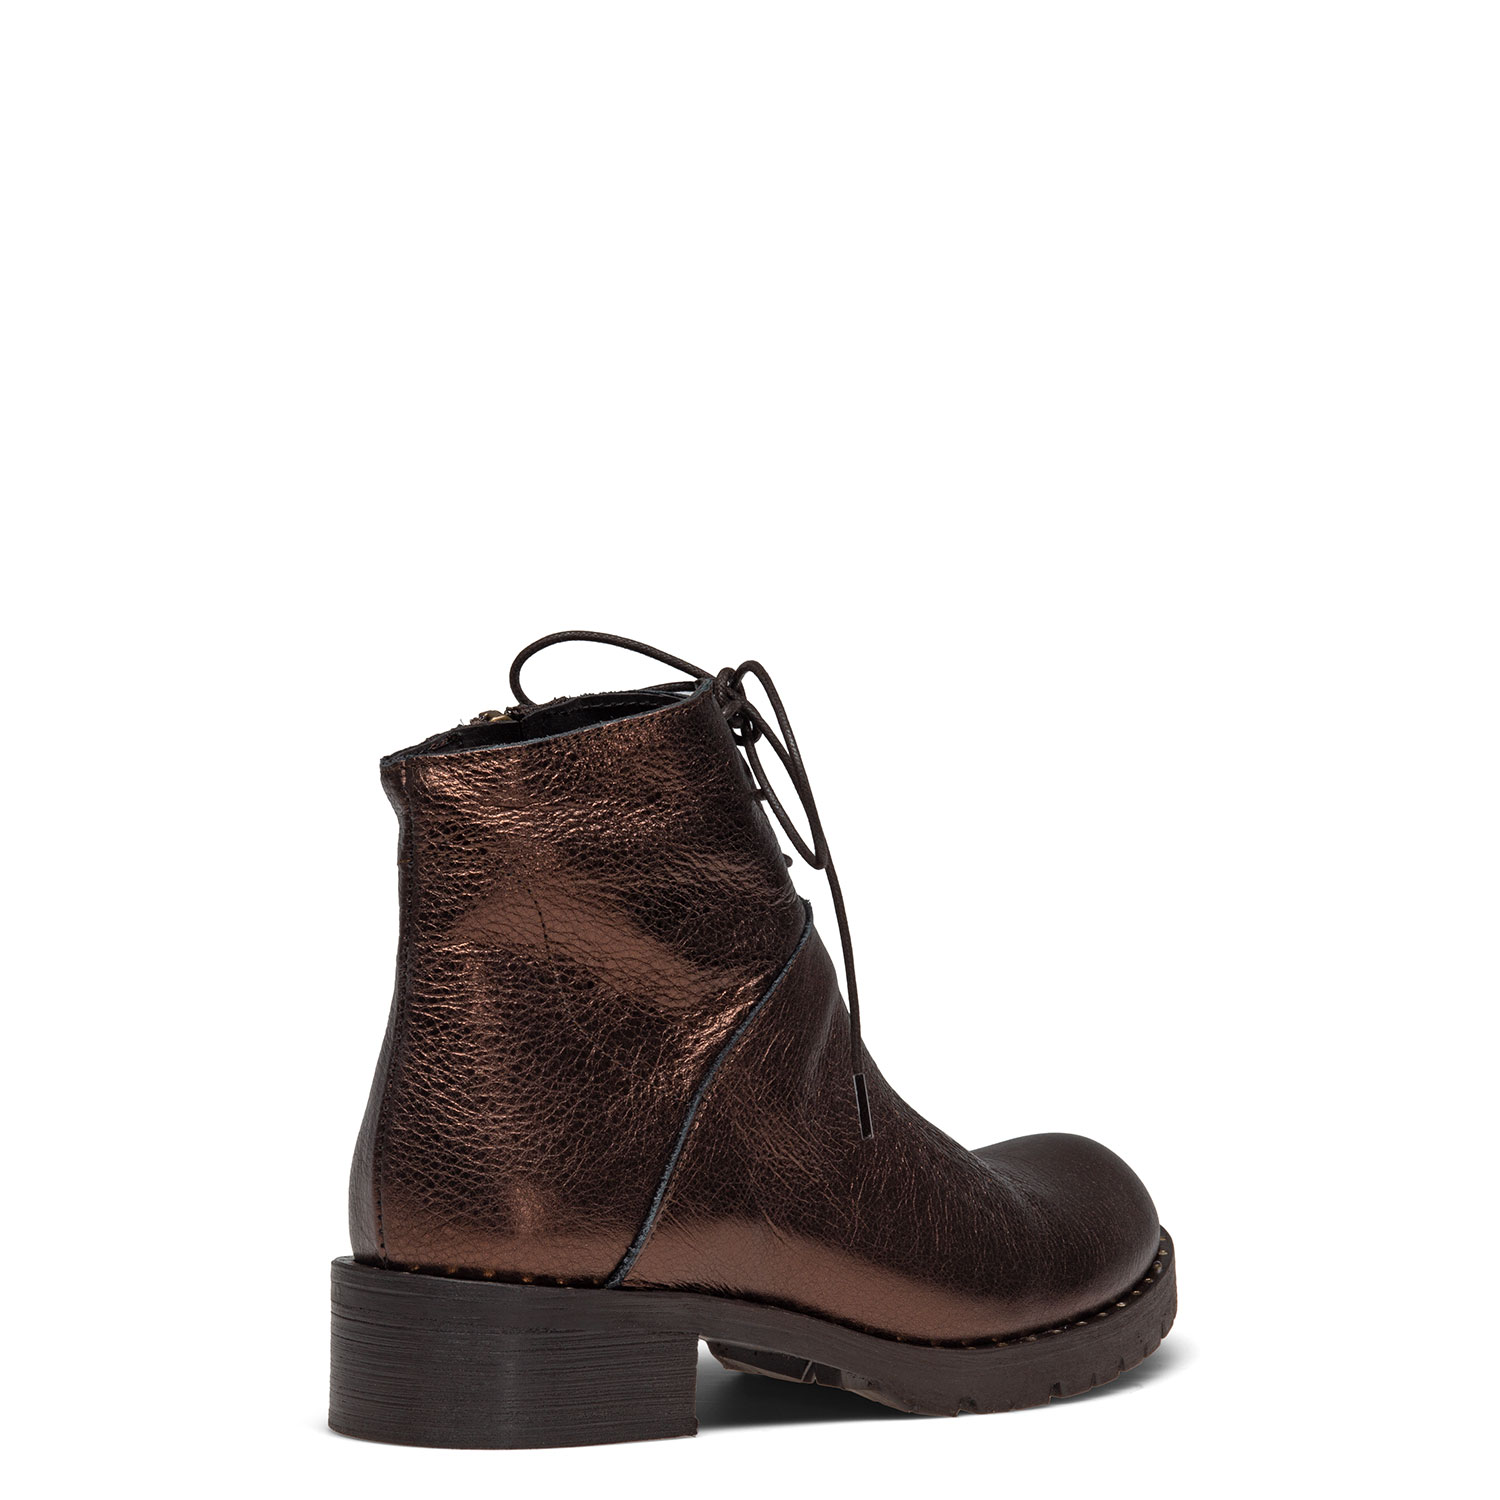 Women's ankle boots PAZOLINI DF-X3219-9